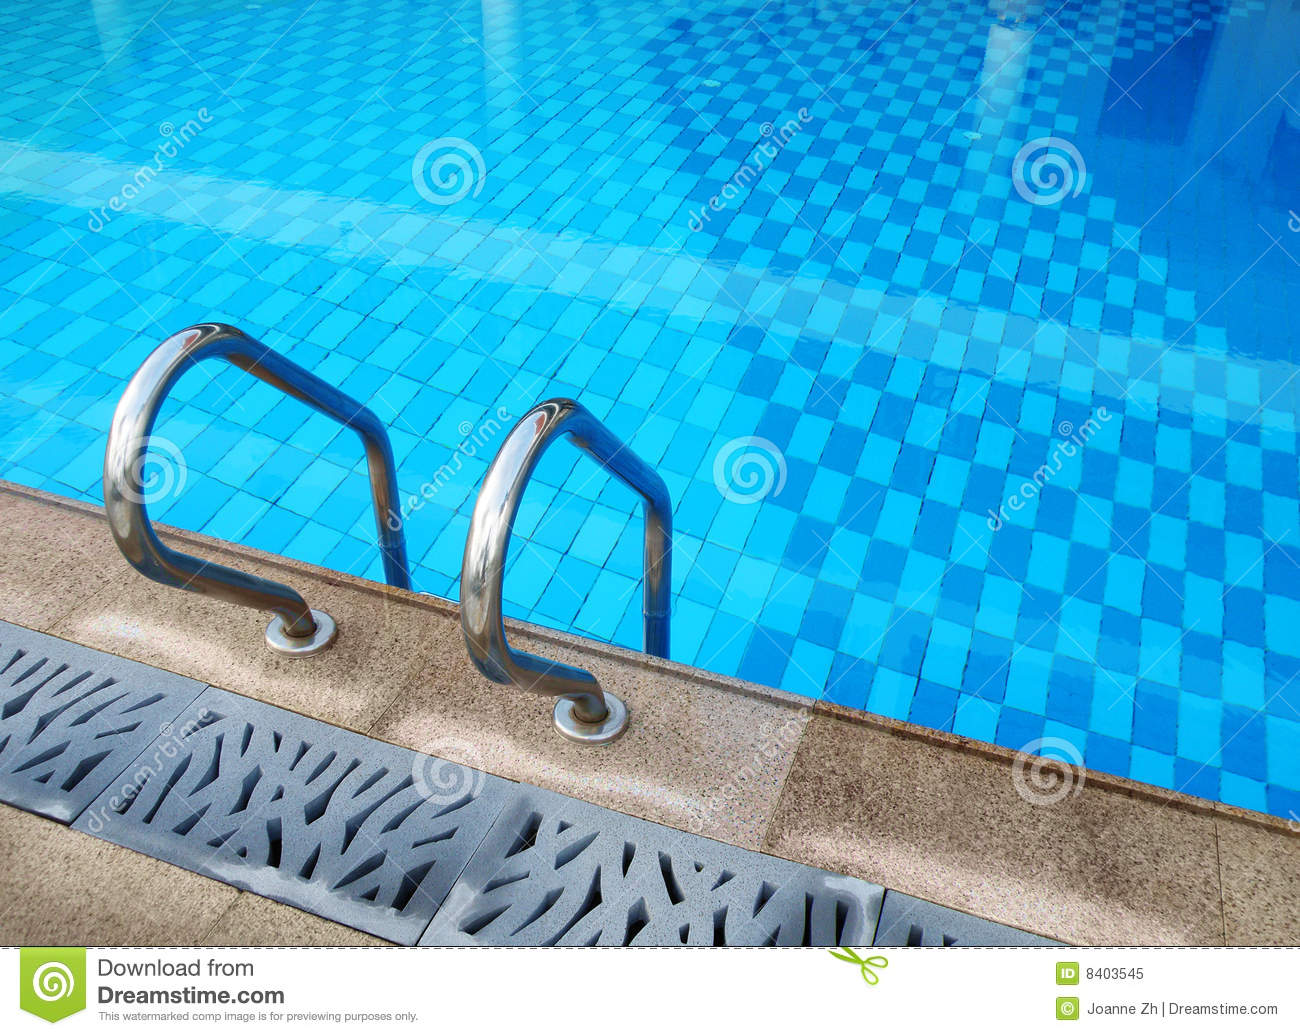 Resort swimming pool design stock image image 8403545 for Pool designs under 30000